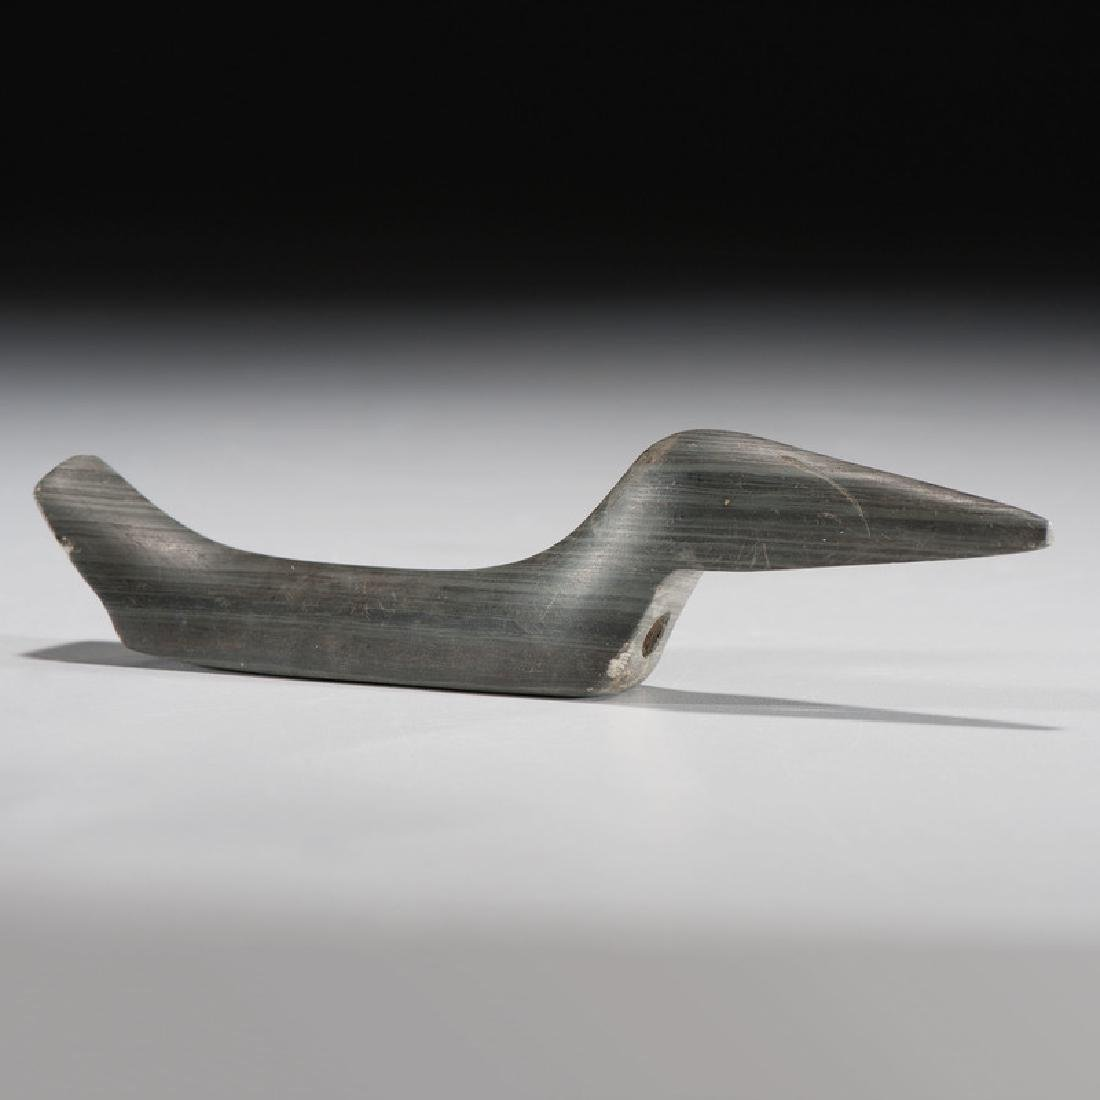 An Elongated Slate Birdstone, From the Collection of